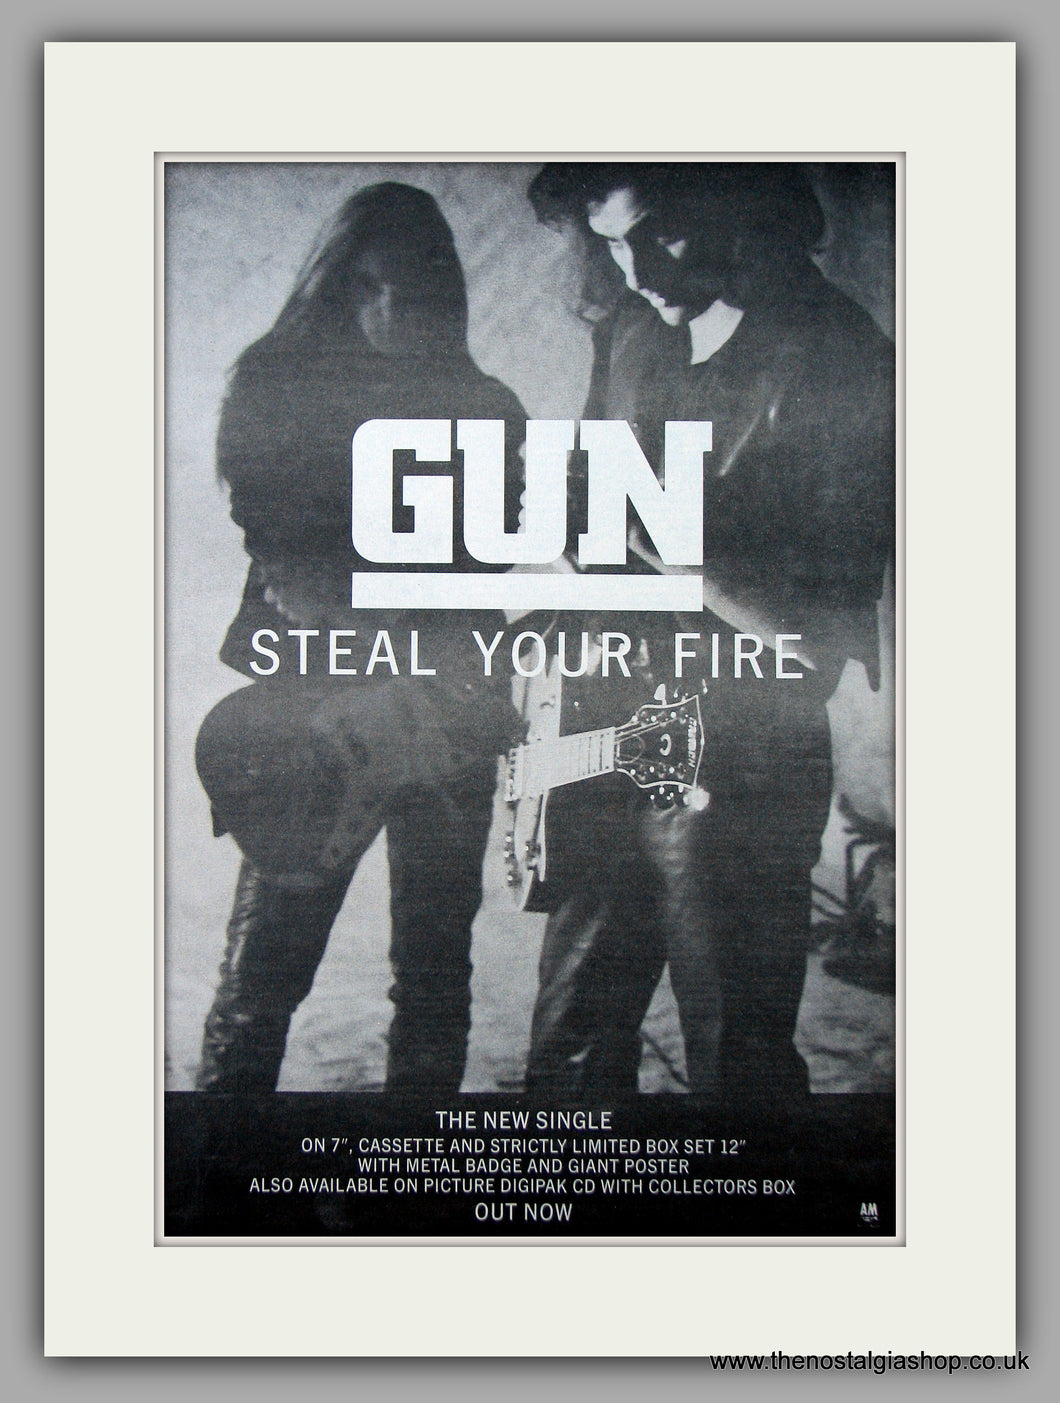 Gun - Steal Your Fire. Original Vintage Advert 1992 (ref AD10806)